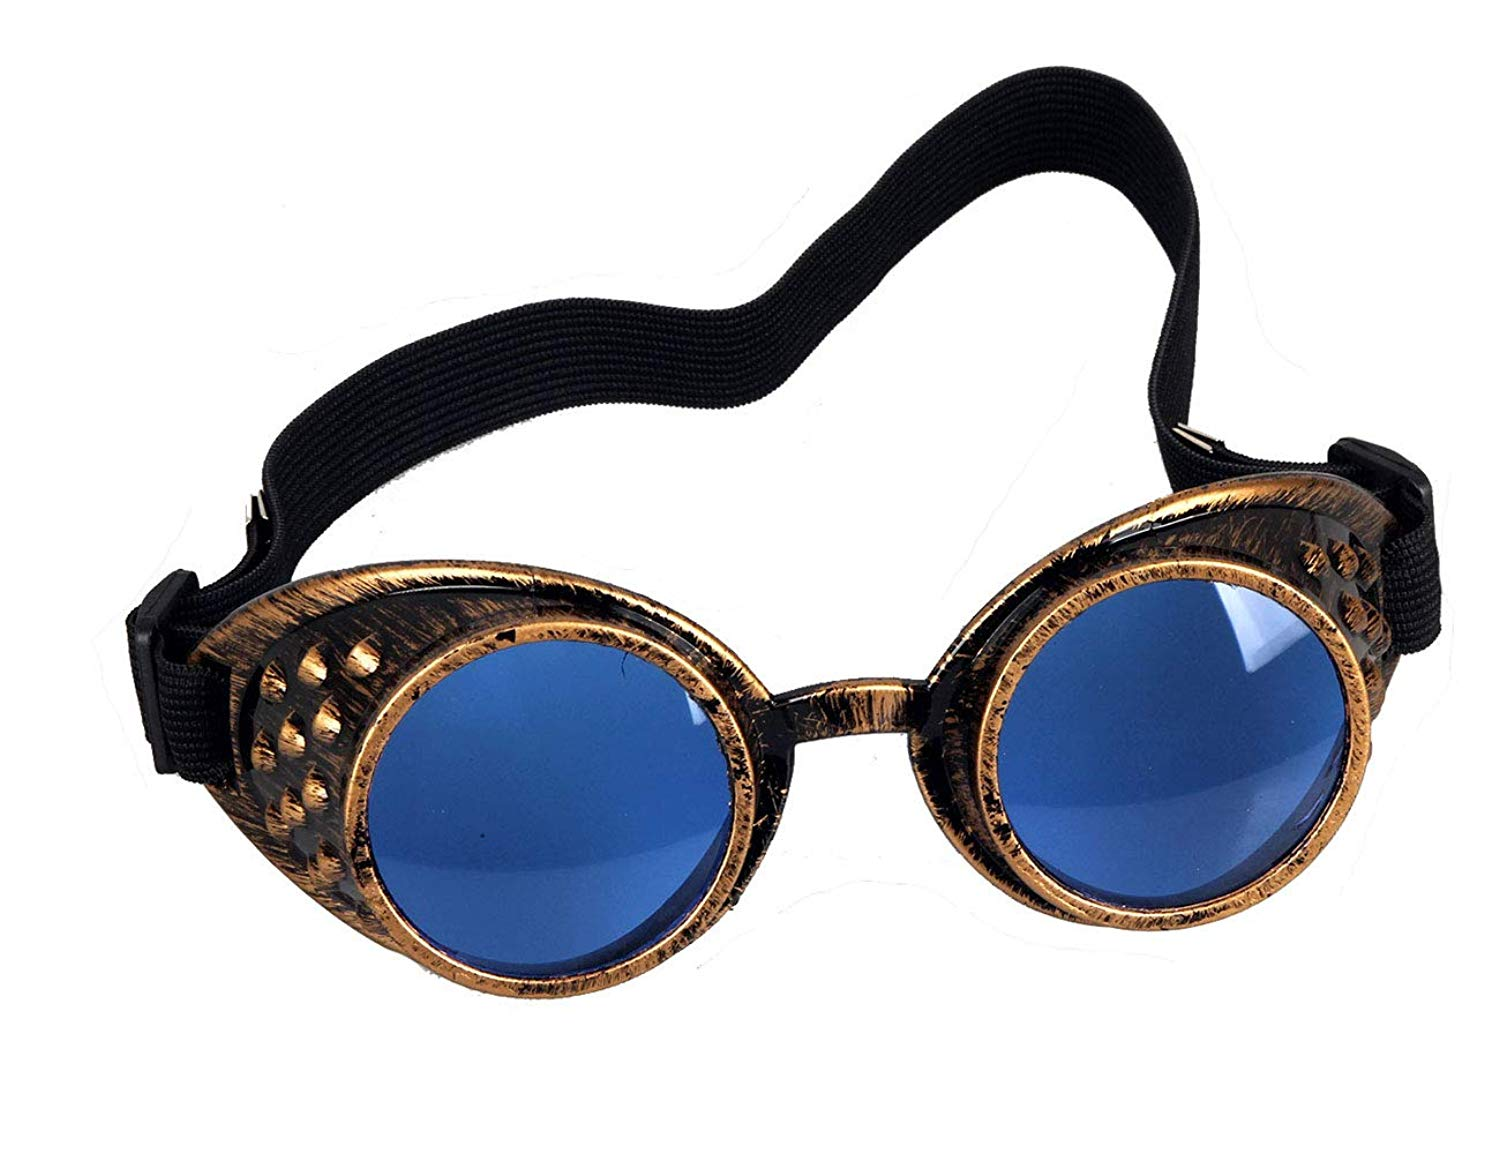 6c7834e91d8e Get Quotations · Steampunk Goggles Cyber Welding Goth Cosplay Vintage  Goggles Rustic Rave Party